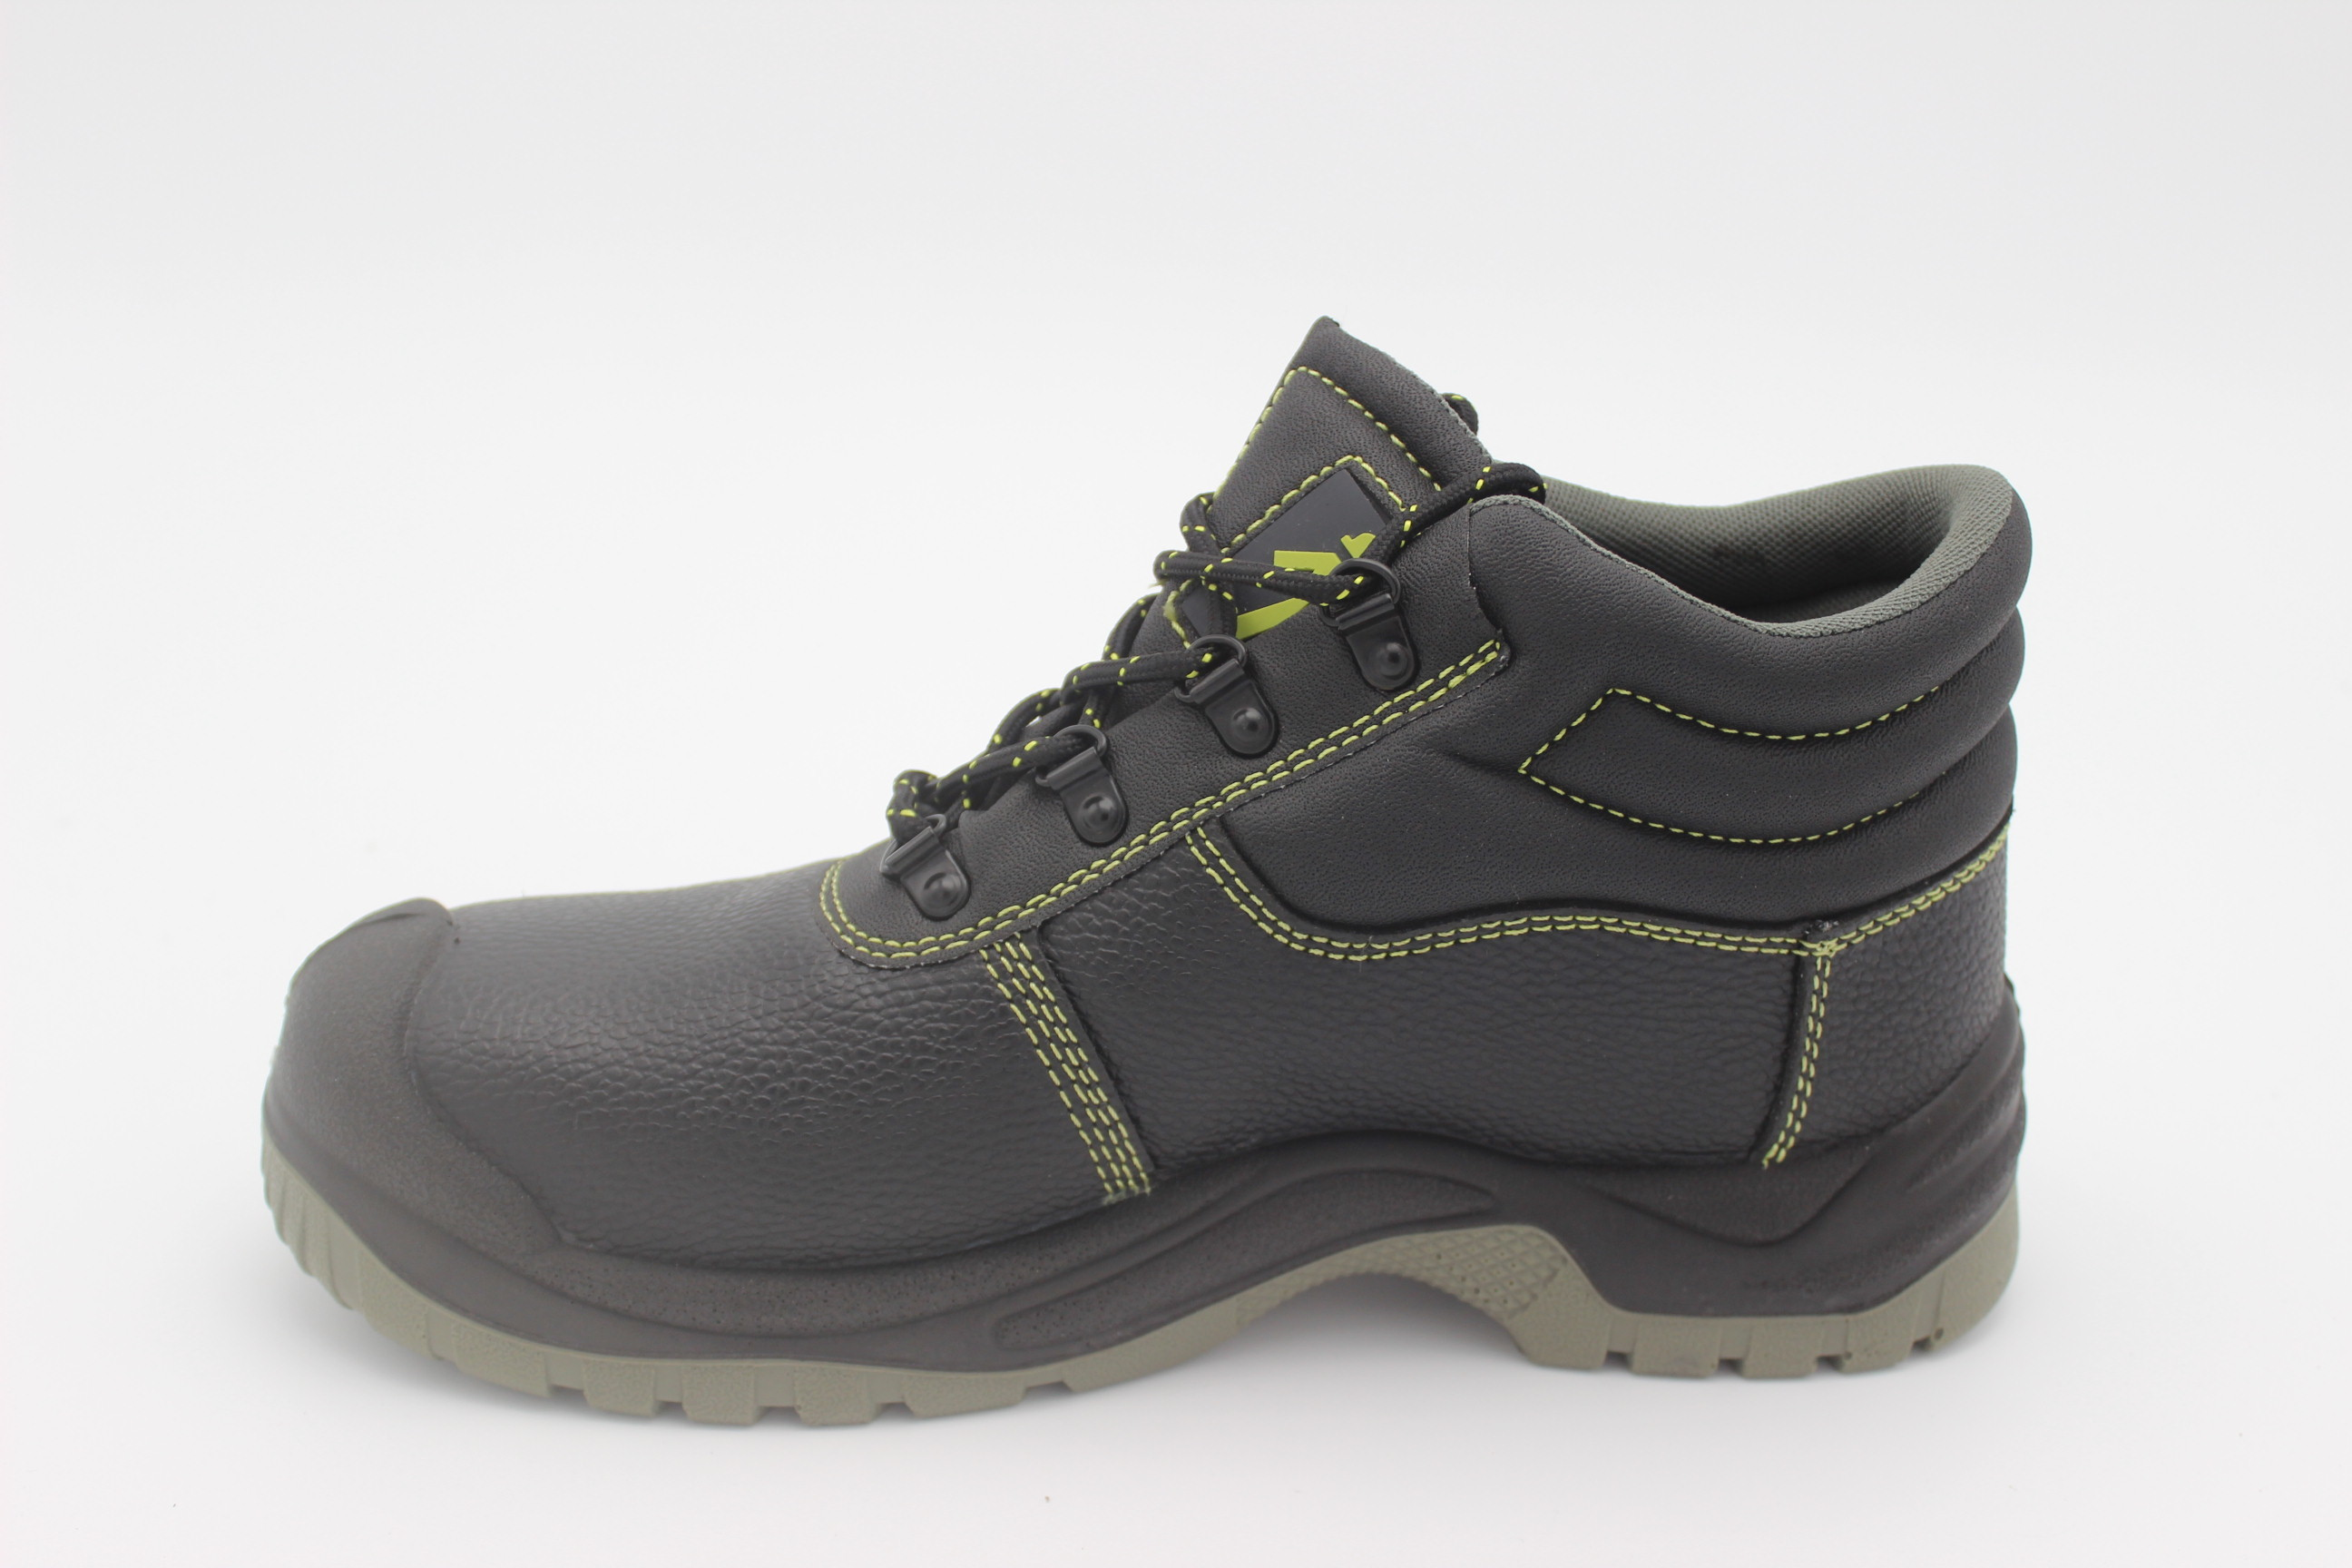 2016 Safety Shoe Factoryfeatured Product